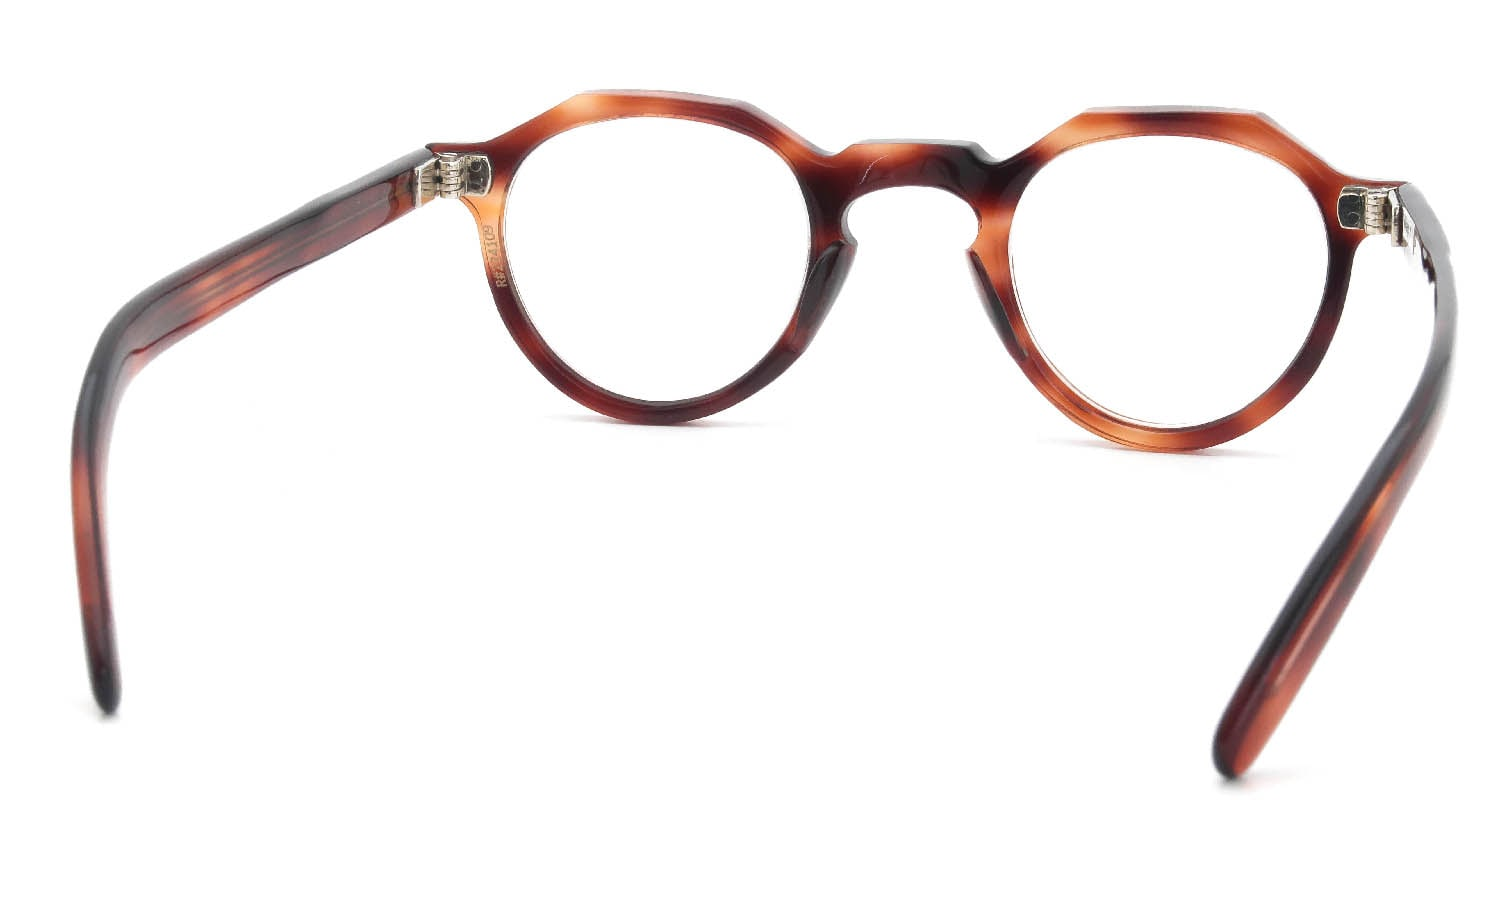 FRENCH VINTAGE 1950s〜1970s FR8004 Tort 41-25